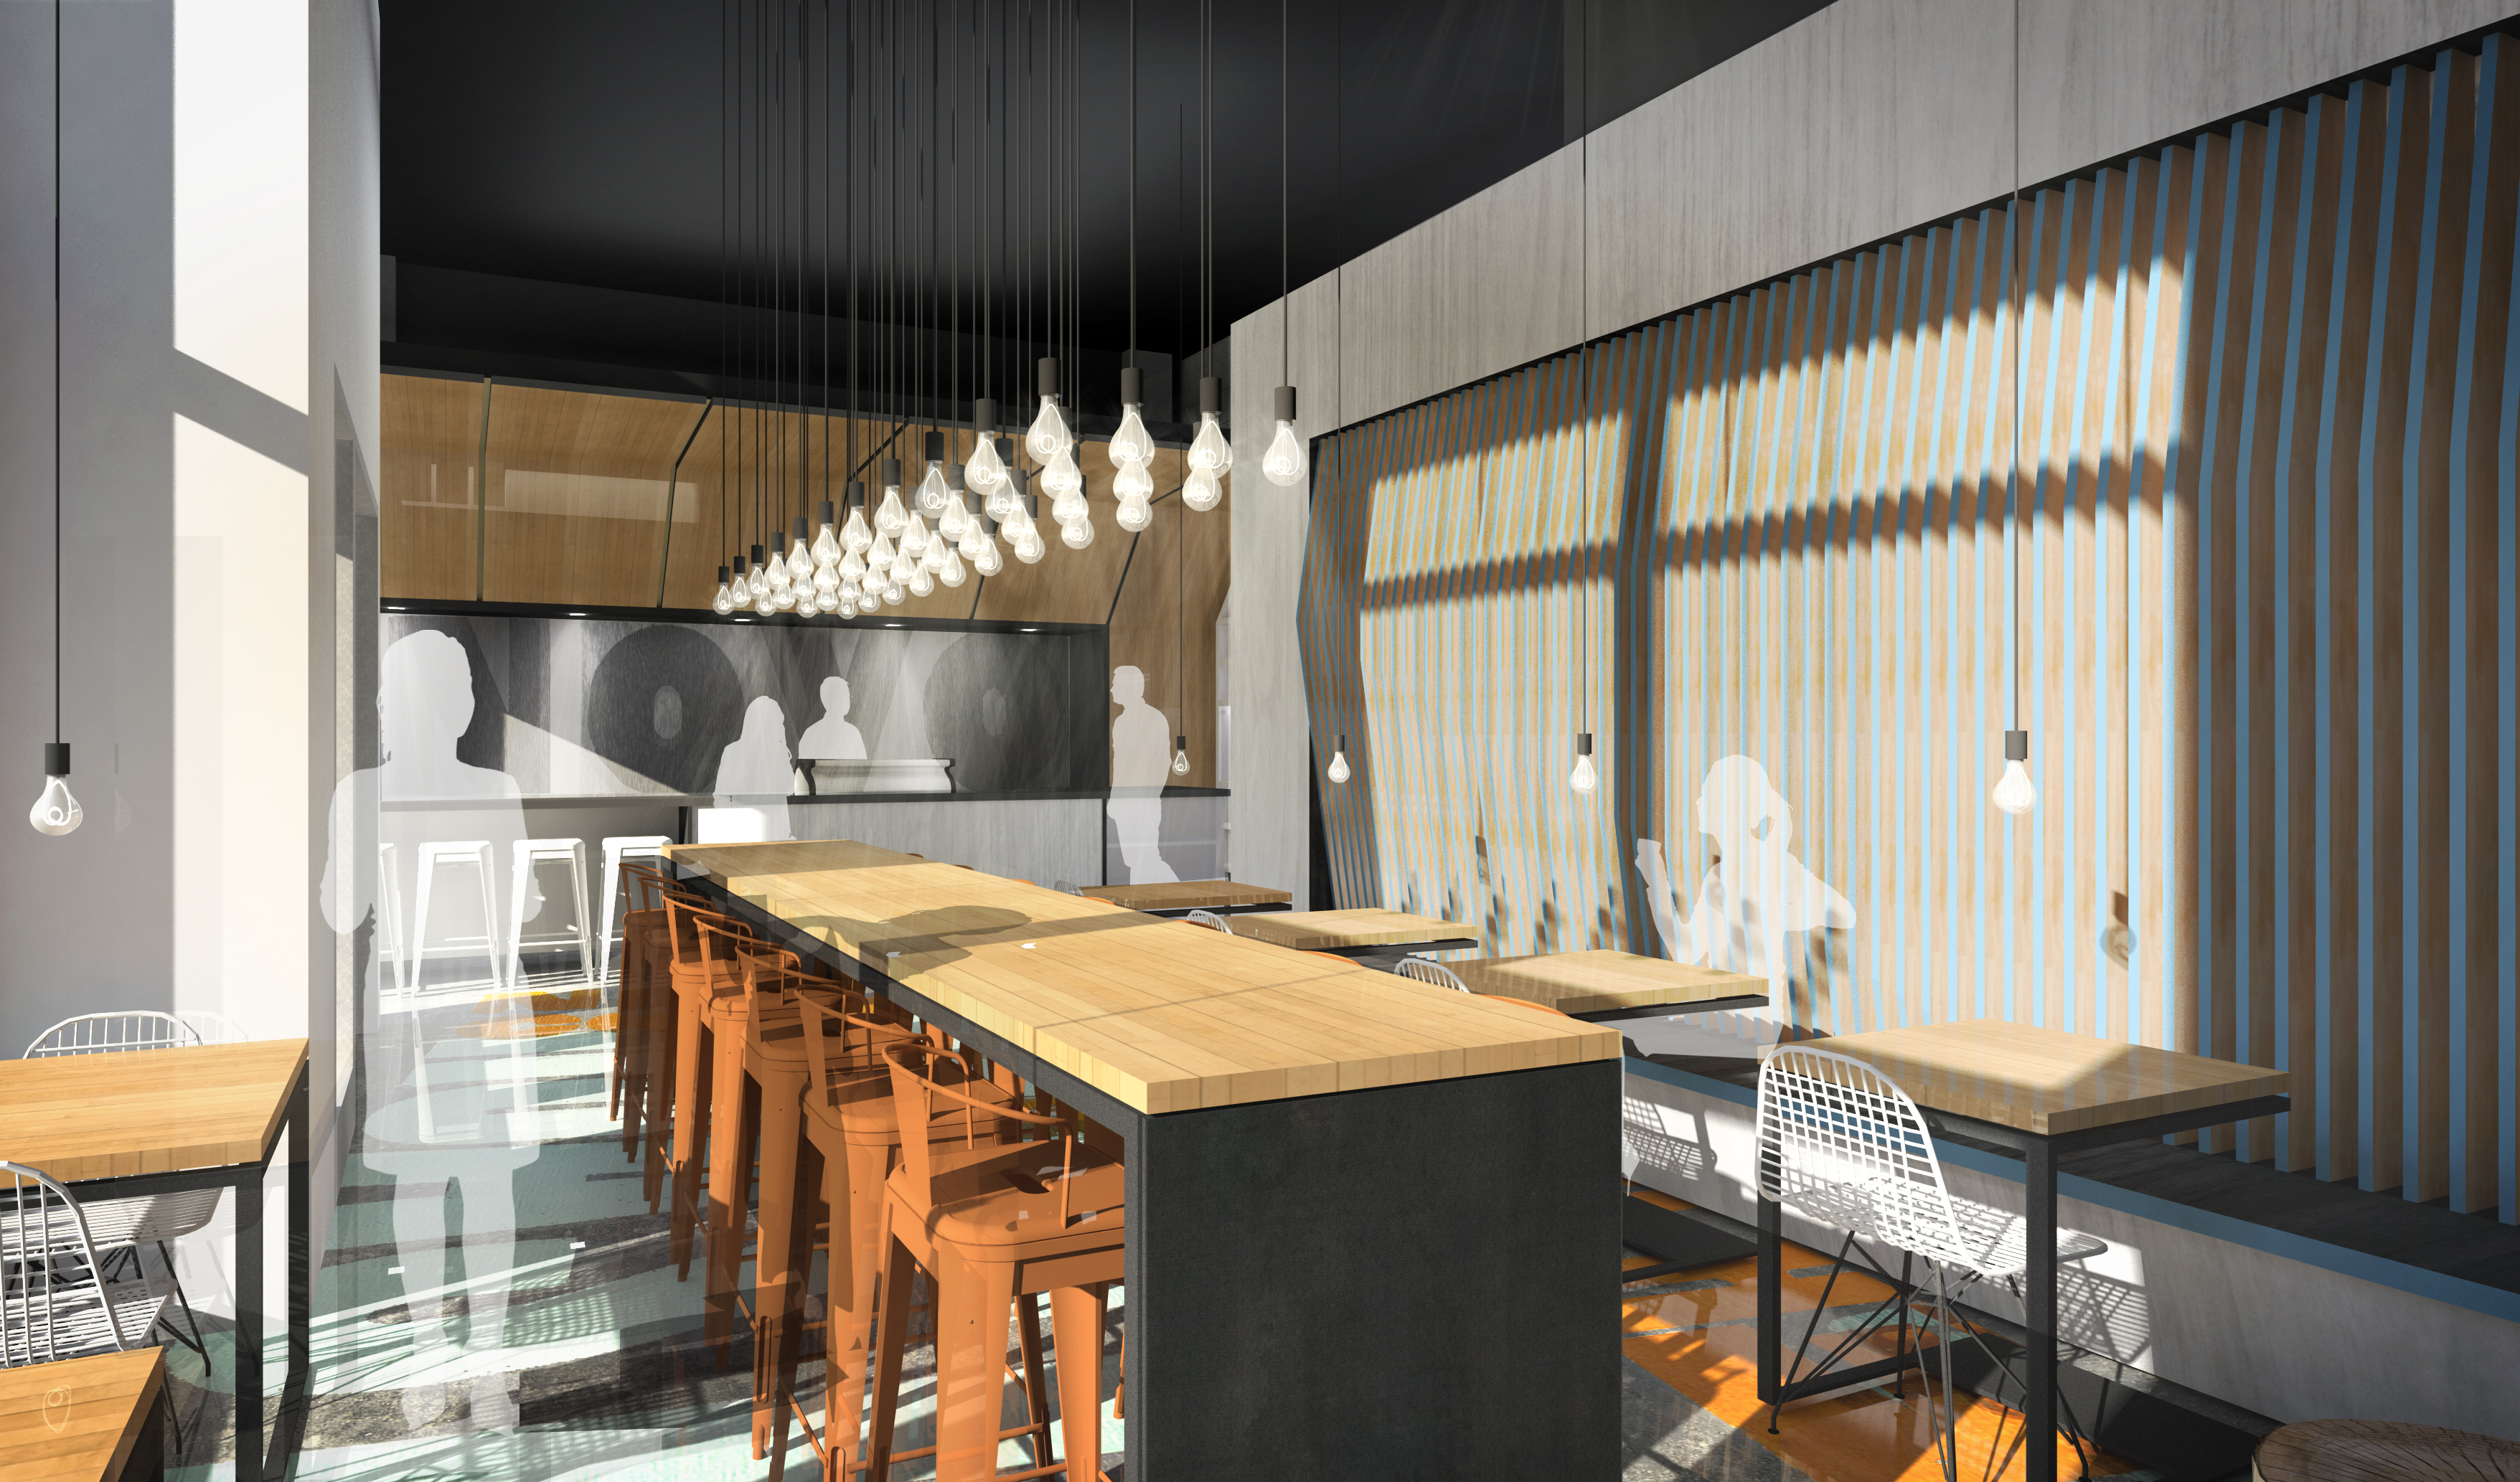 Novo Coffee shop 1600 Glenarm rendering open studio architecture OSA